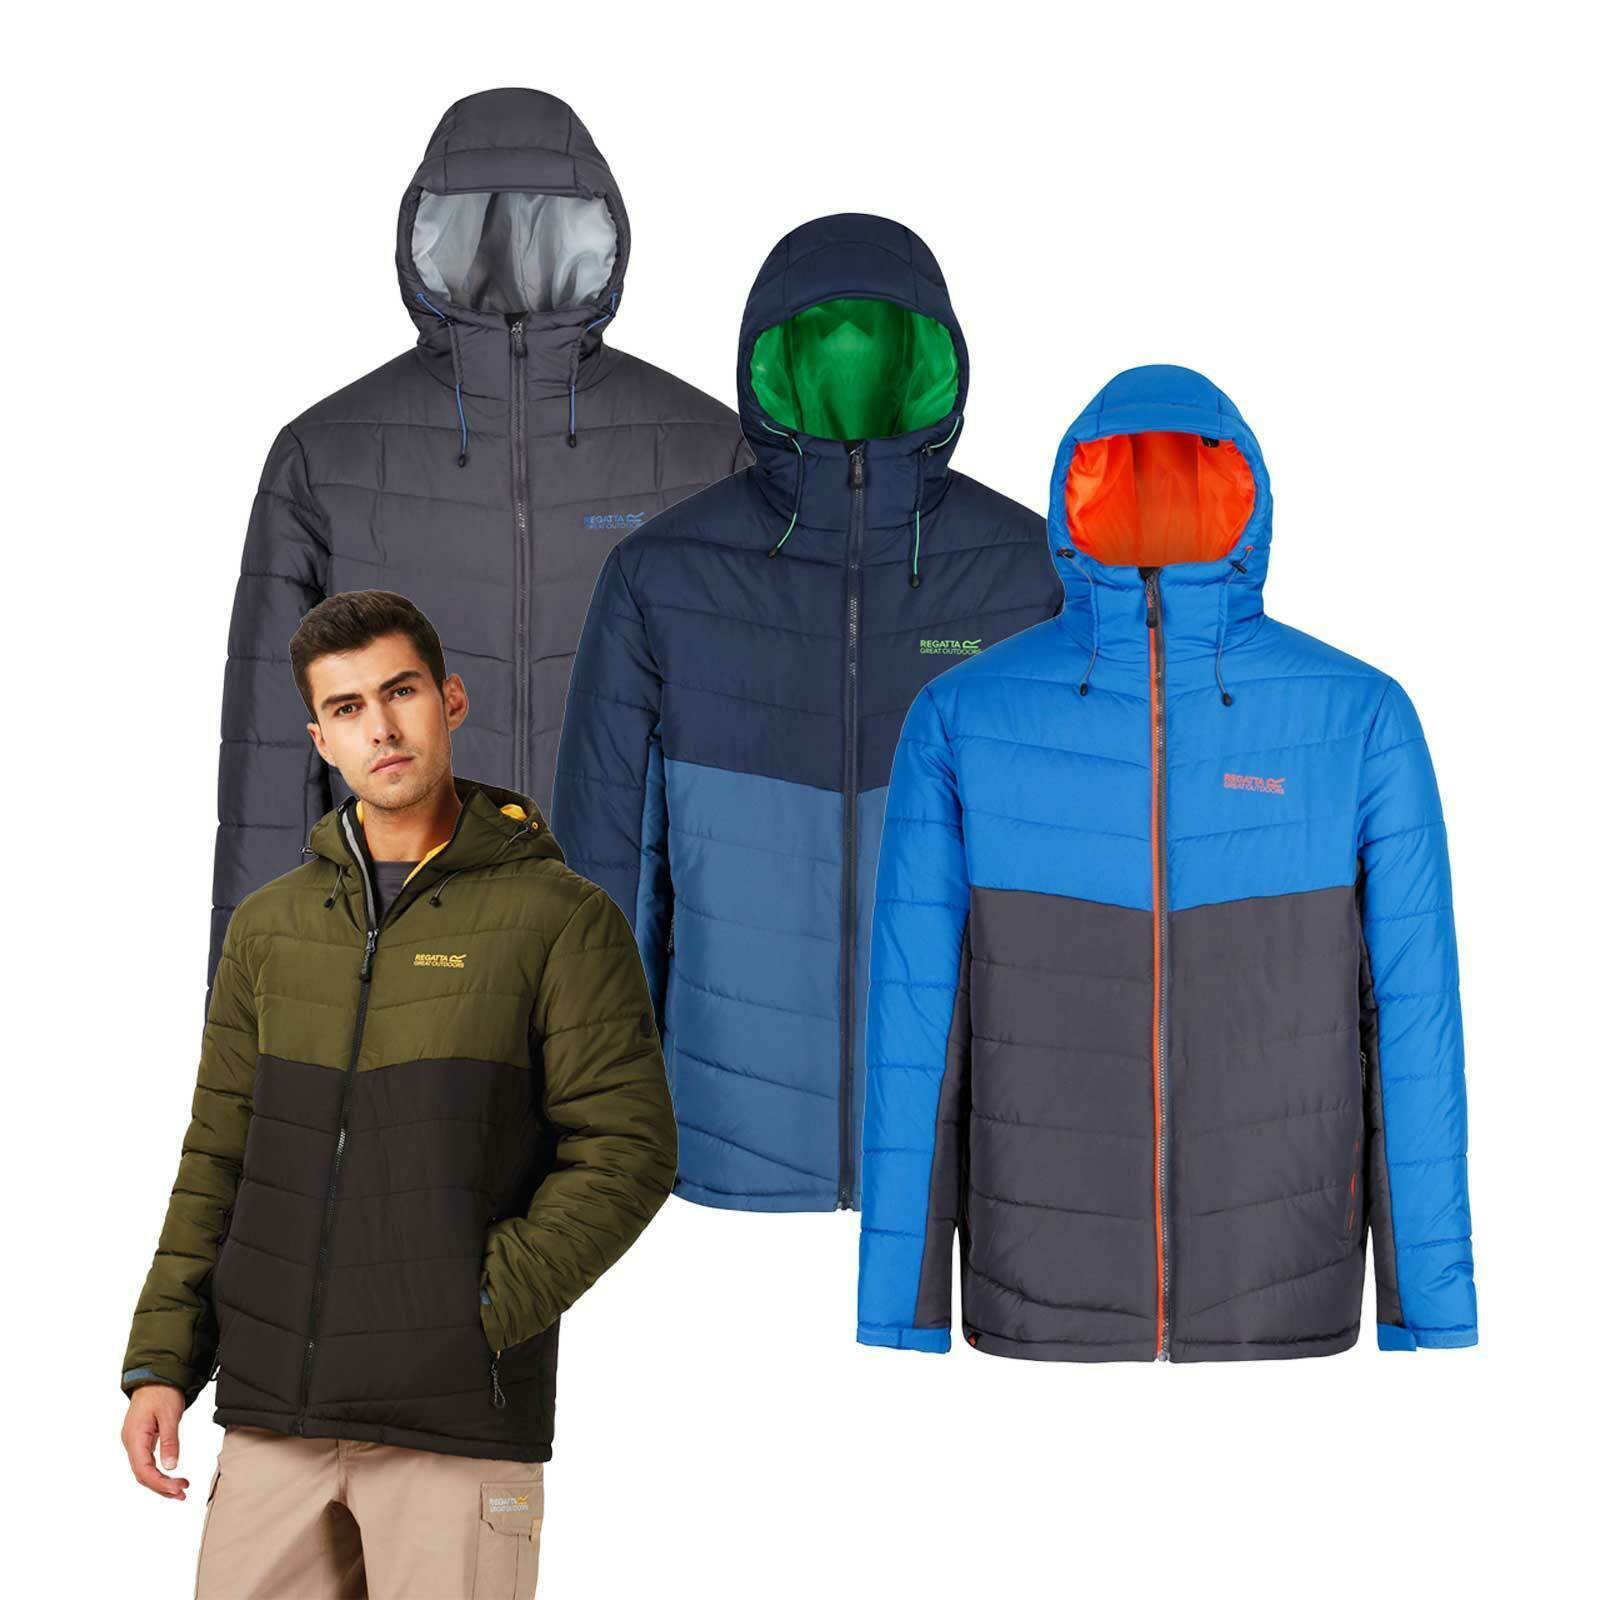 Regatta herren Nevado II Insulated jacke